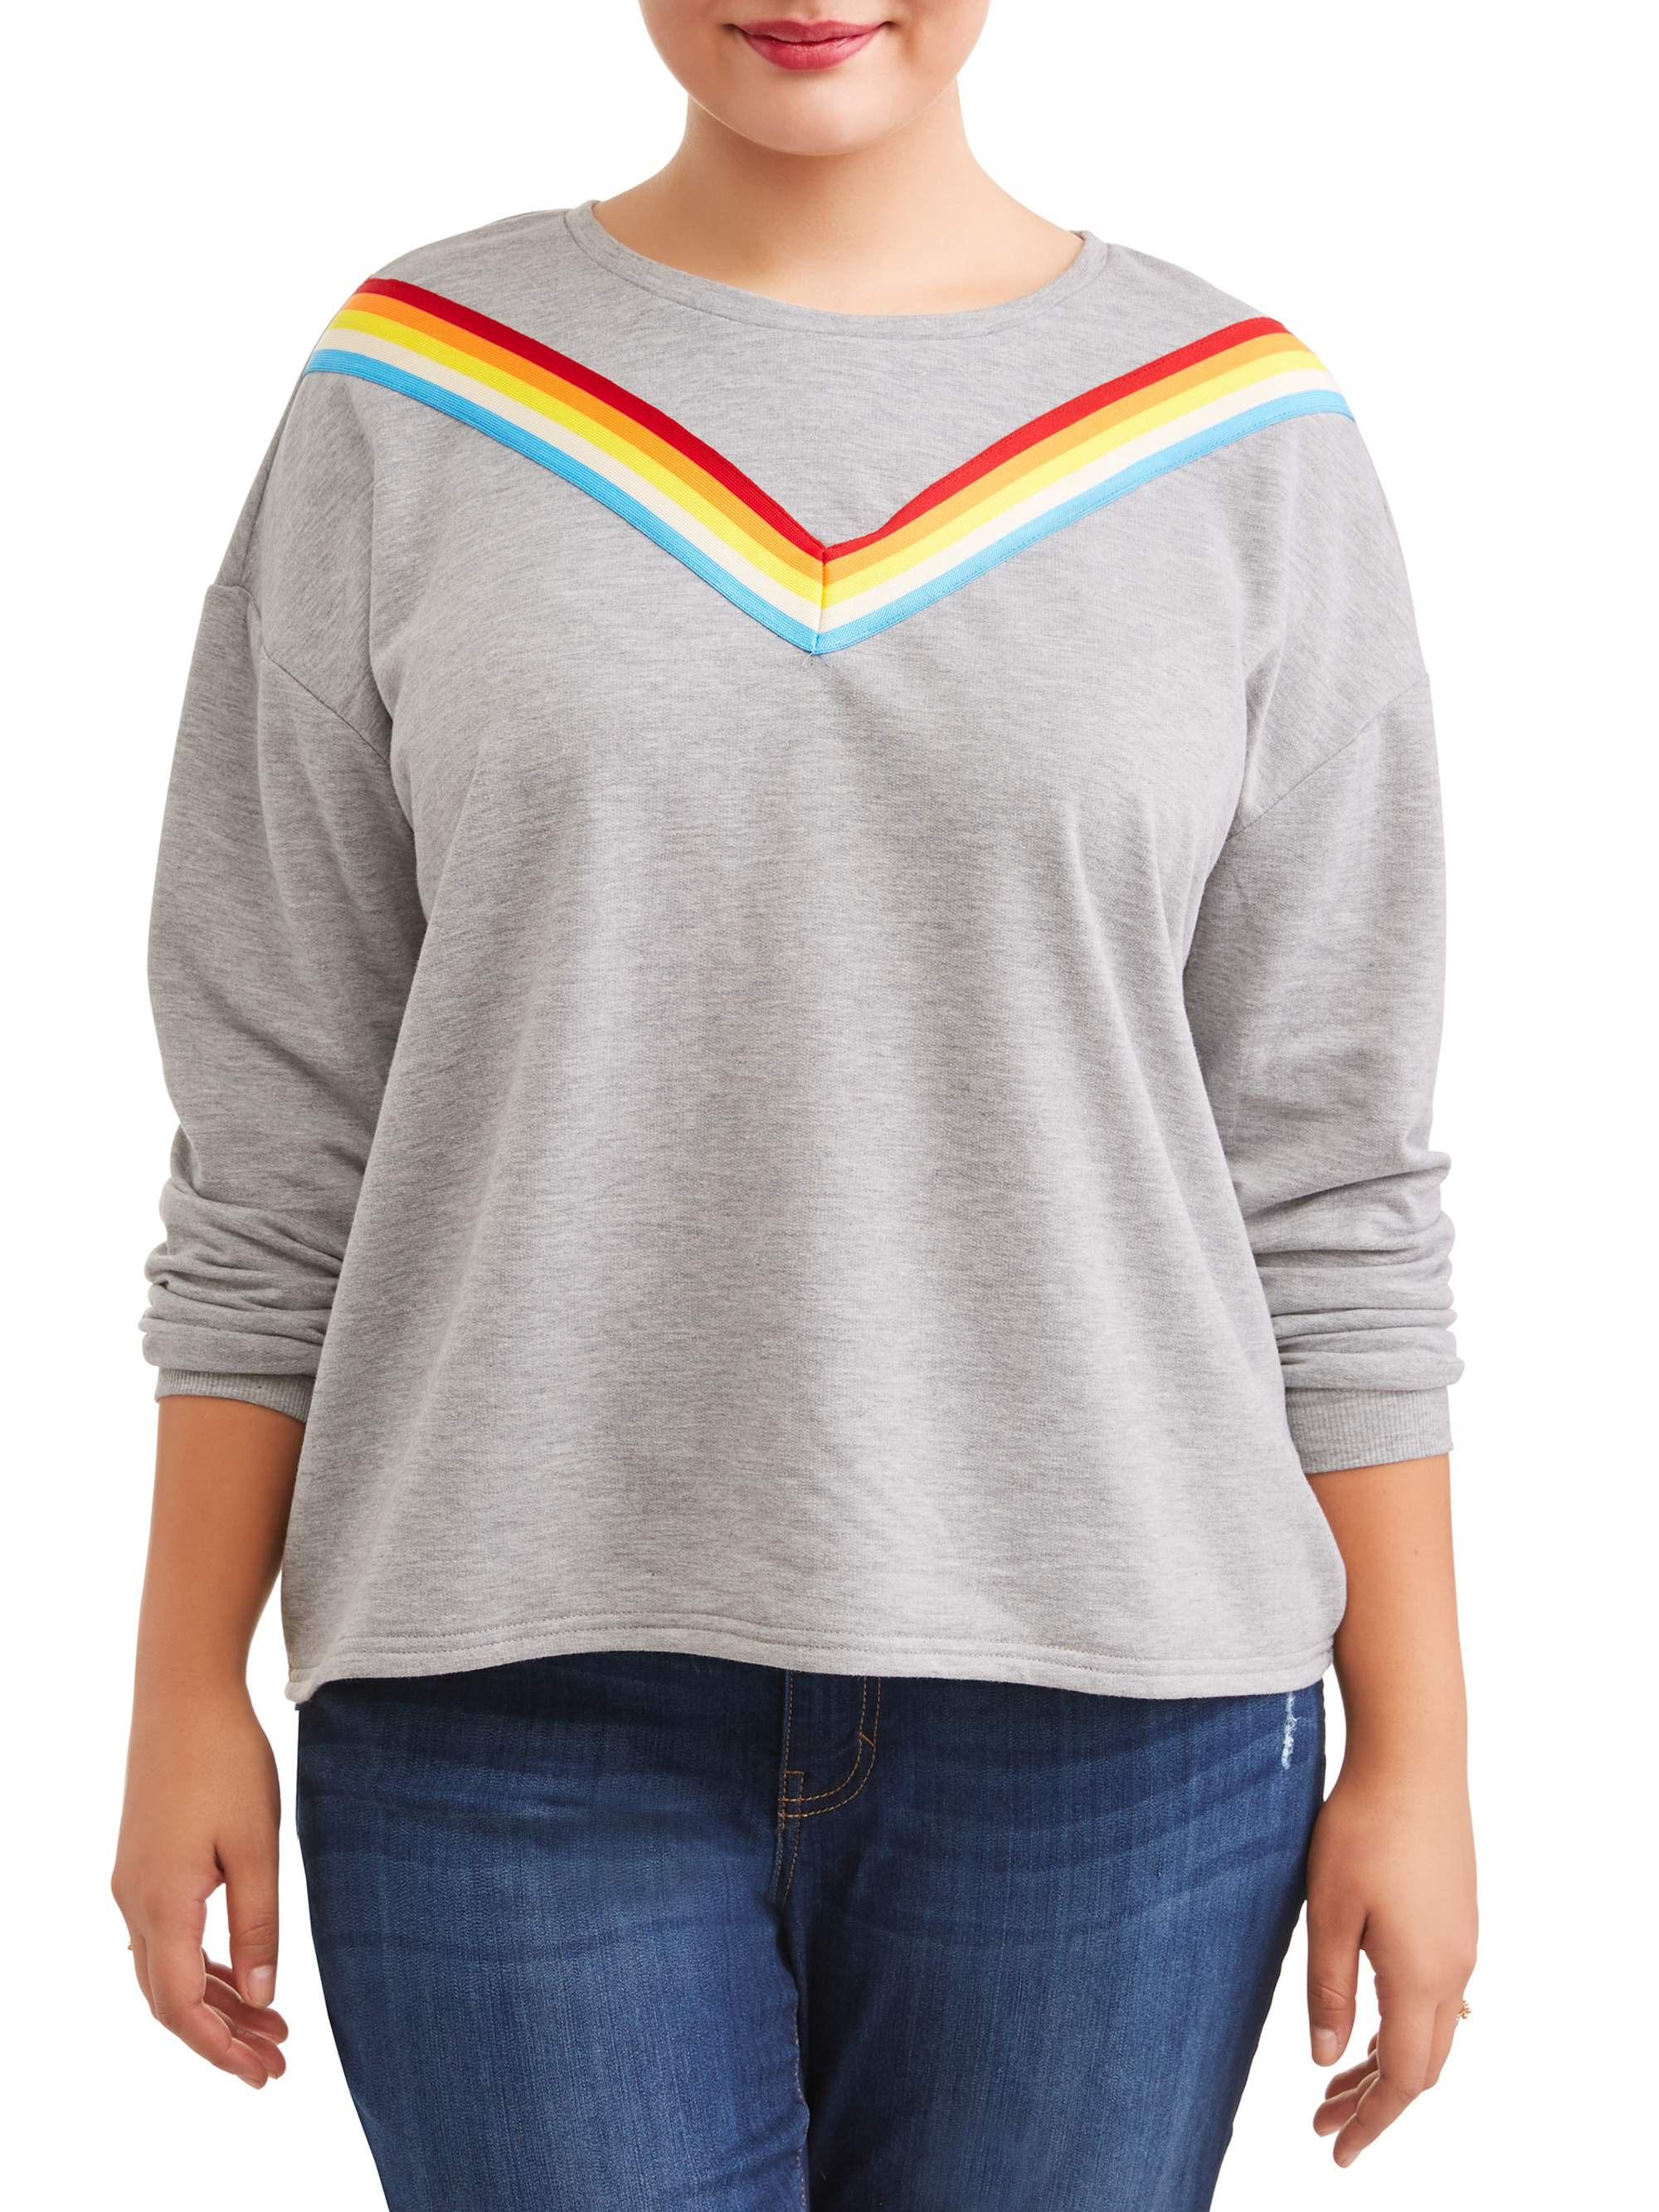 Juniors' Plus Size Rainbow Striped Sweatshirt